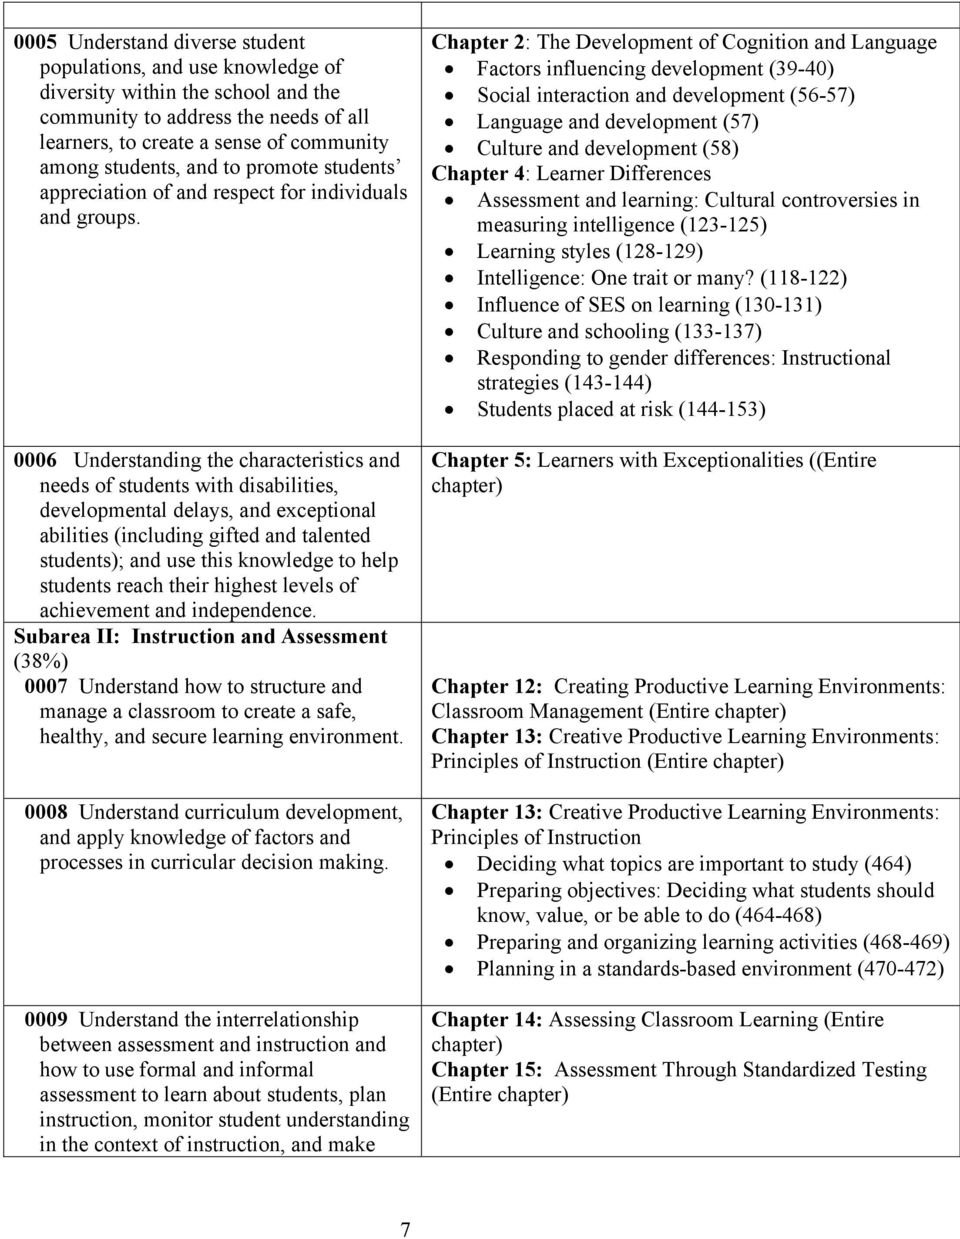 0006 Understanding the characteristics and needs of students with disabilities, developmental delays, and exceptional abilities (including gifted and talented students); and use this knowledge to